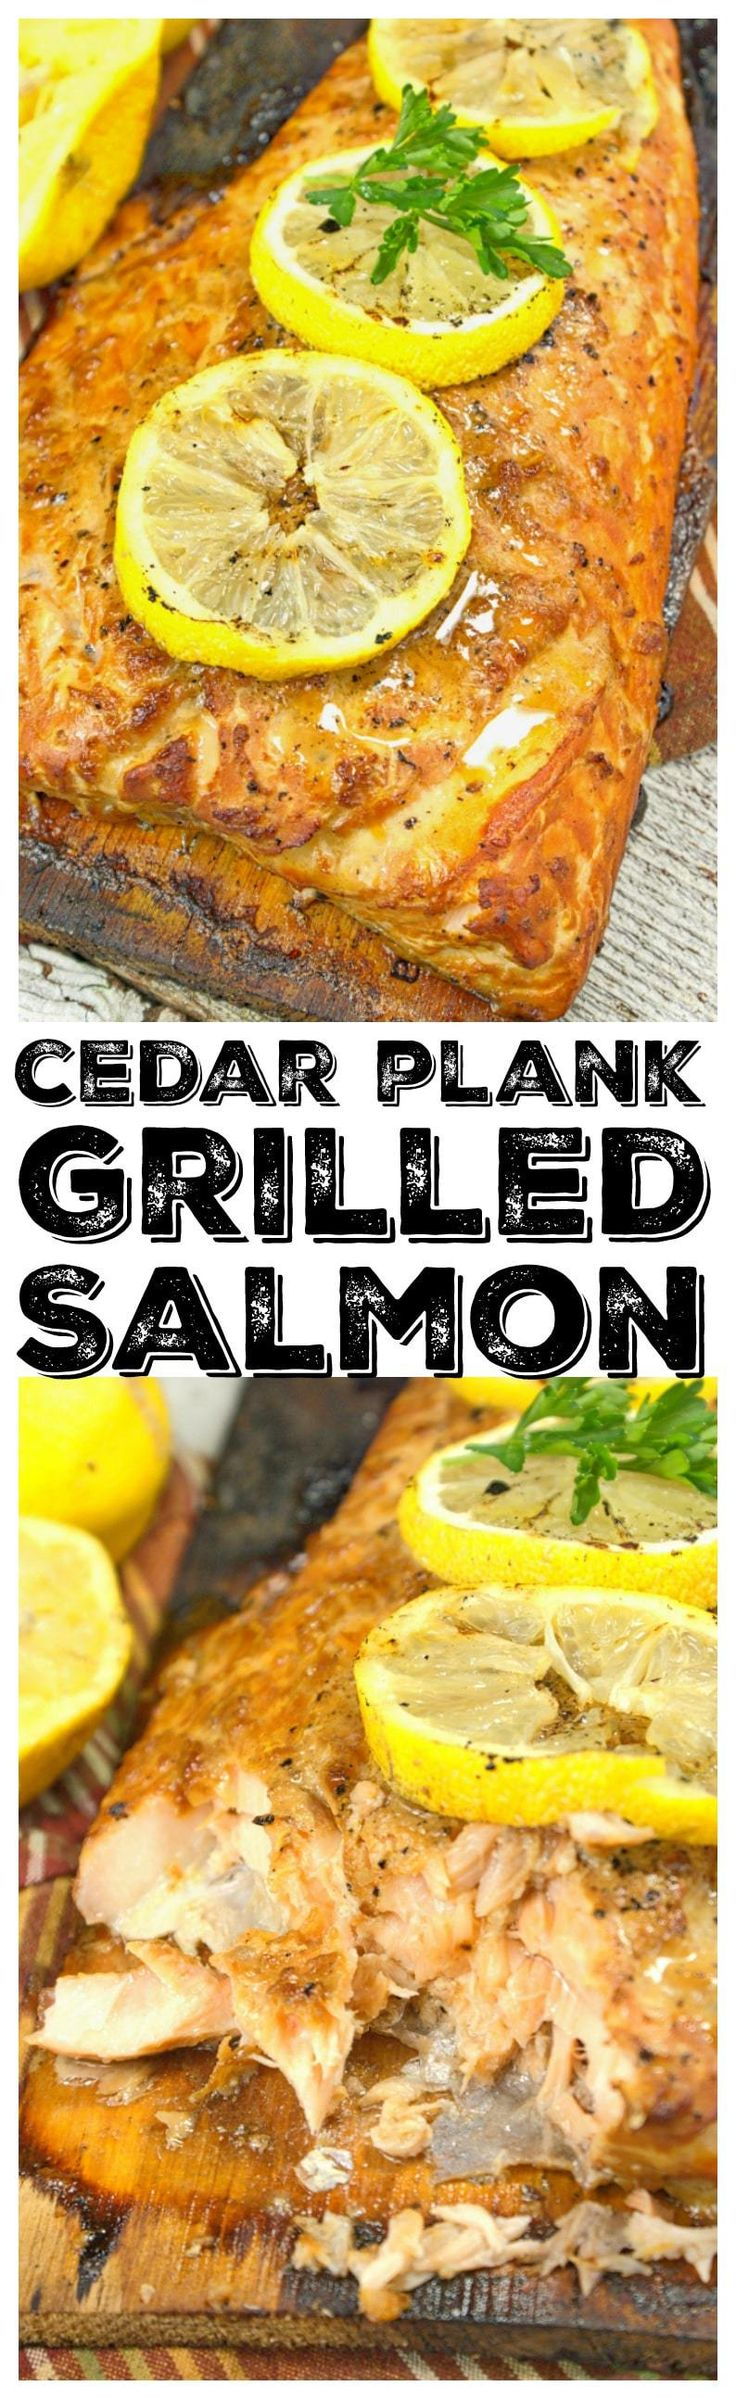 Best 25 grilled salmon recipes ideas on pinterest for Grilling fish on cedar plank